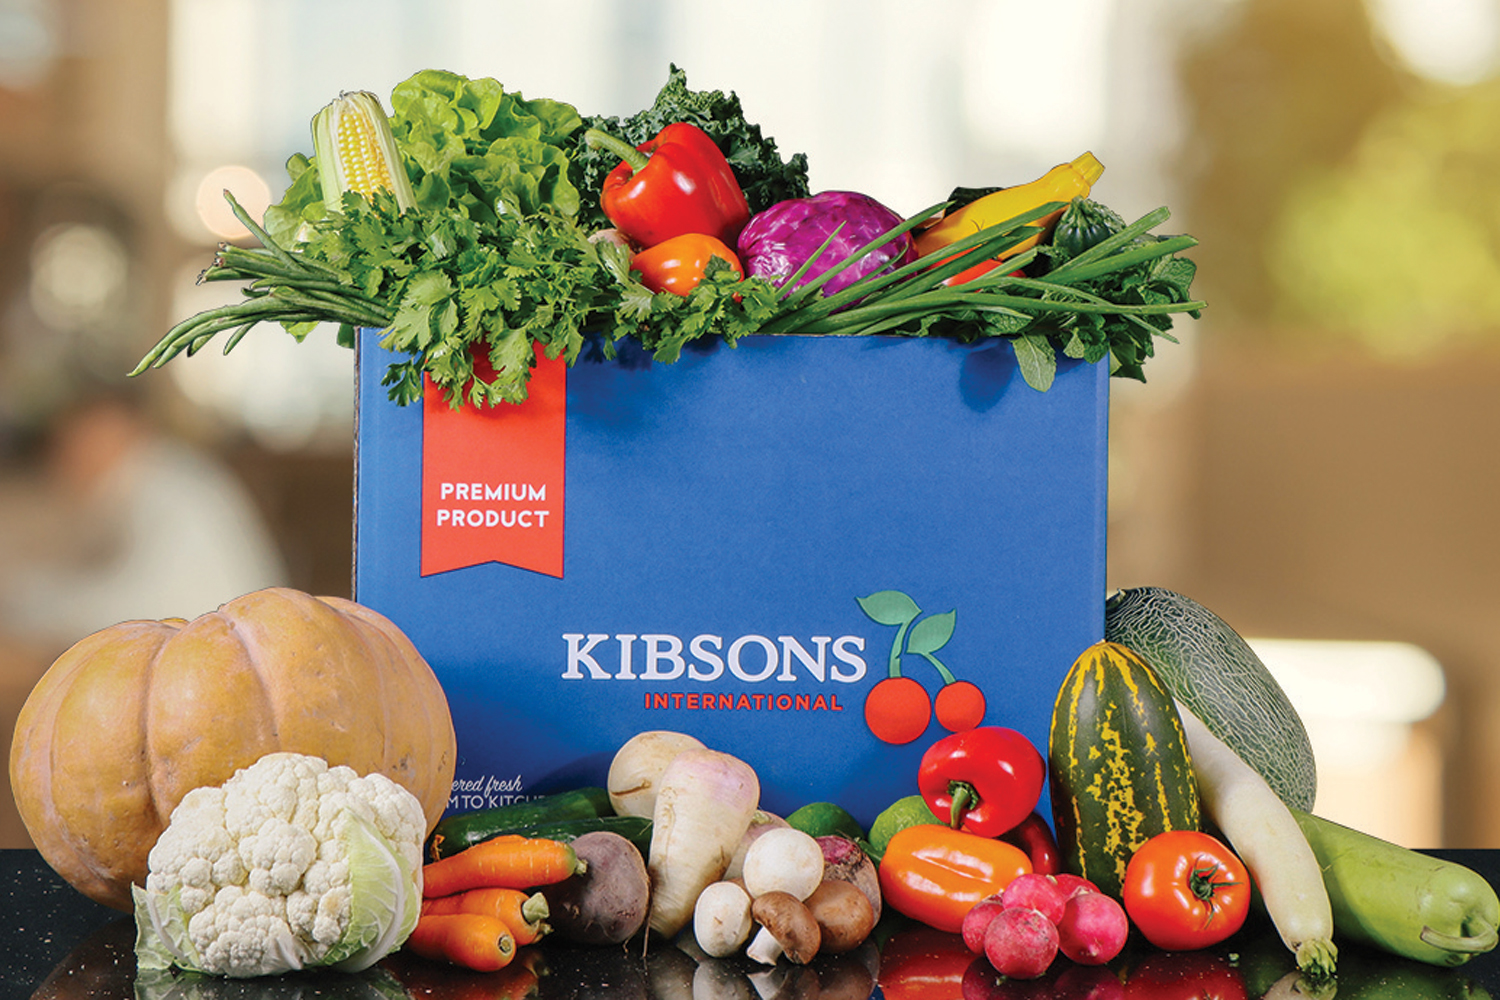 Kibsons has introduced three brand-new eco-friendly products